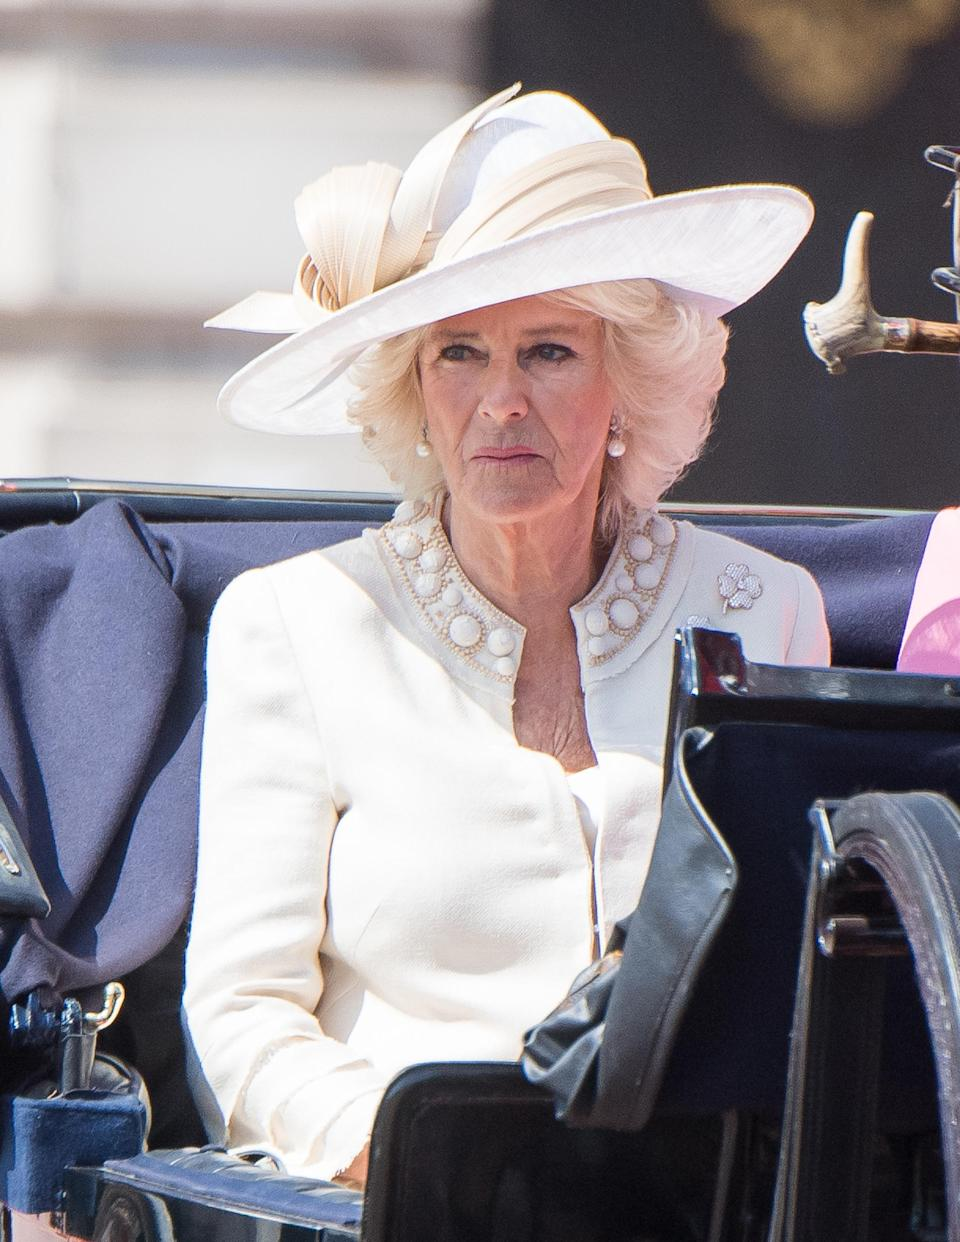 For the 2017 event, Camilla Parker-Bowles wore a cream dress coat by Anna Valentine. (Getty Images)